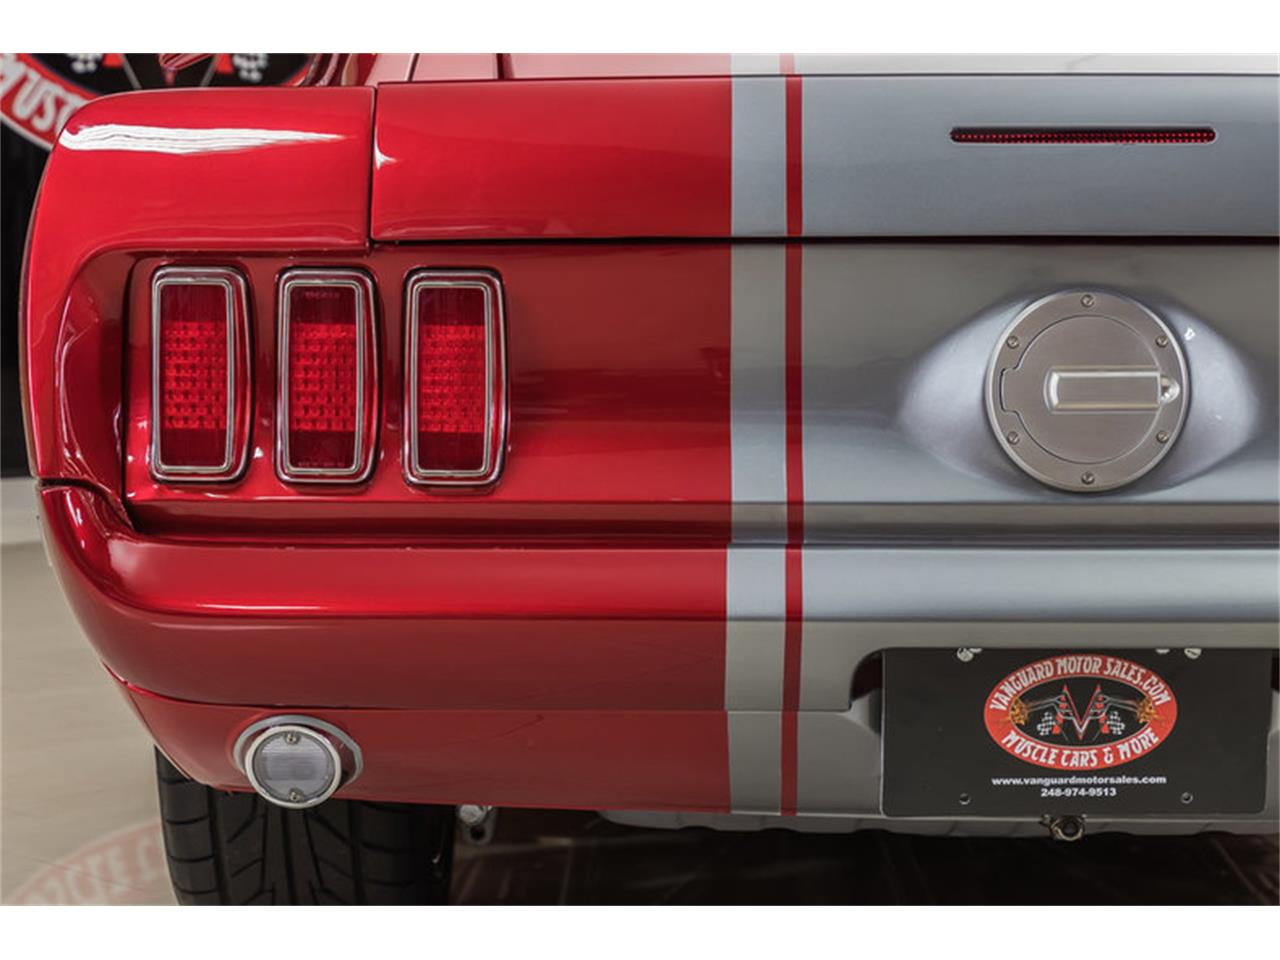 Large Picture of 1969 Ford Mustang Fastback Restomod located in Plymouth Michigan - $194,900.00 Offered by Vanguard Motor Sales - L6C8